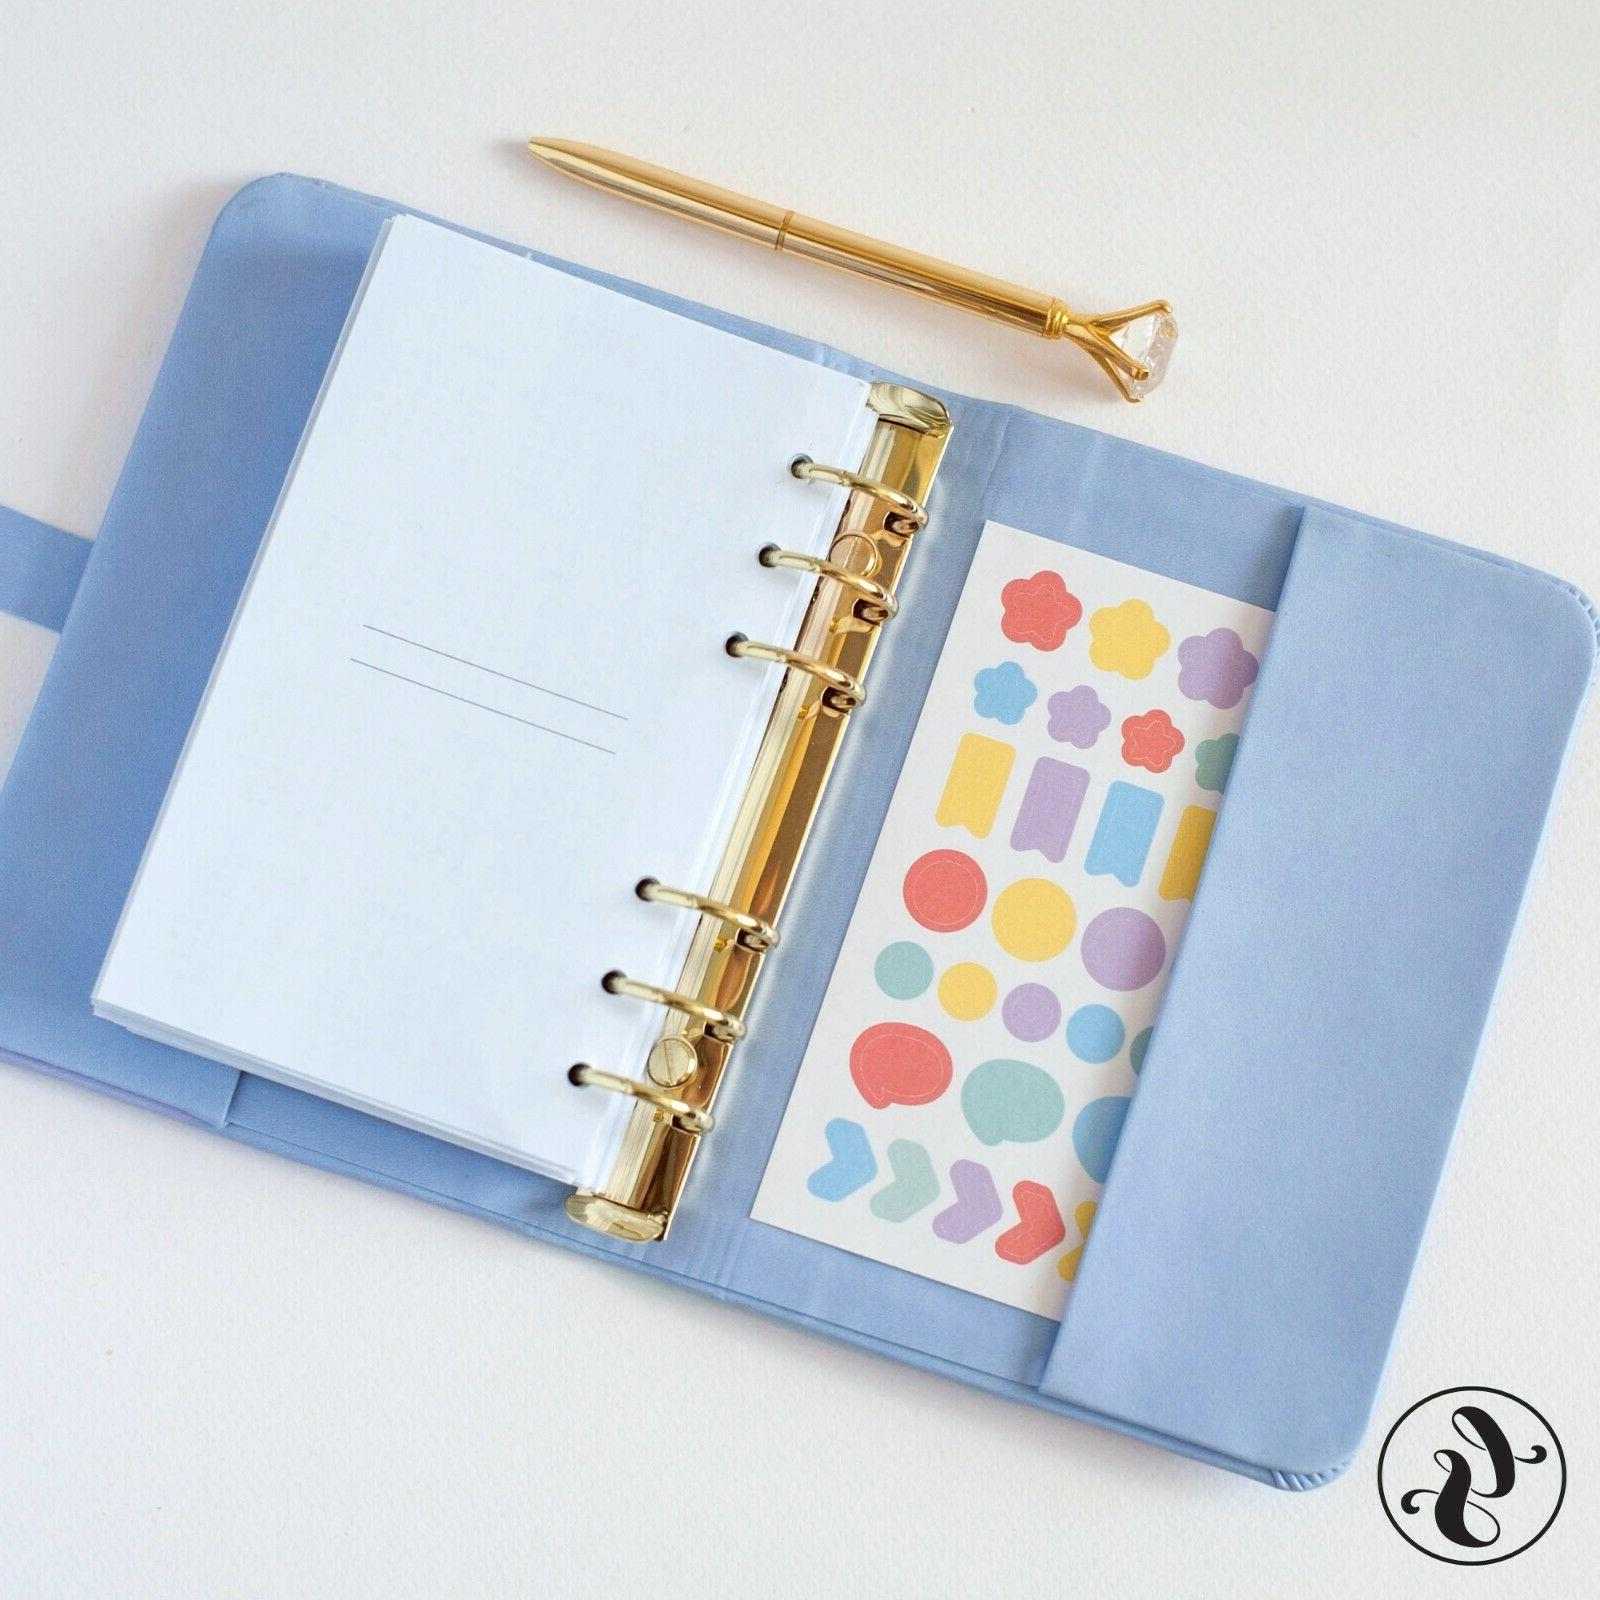 Leather Journal With Monogram Planner Calendar